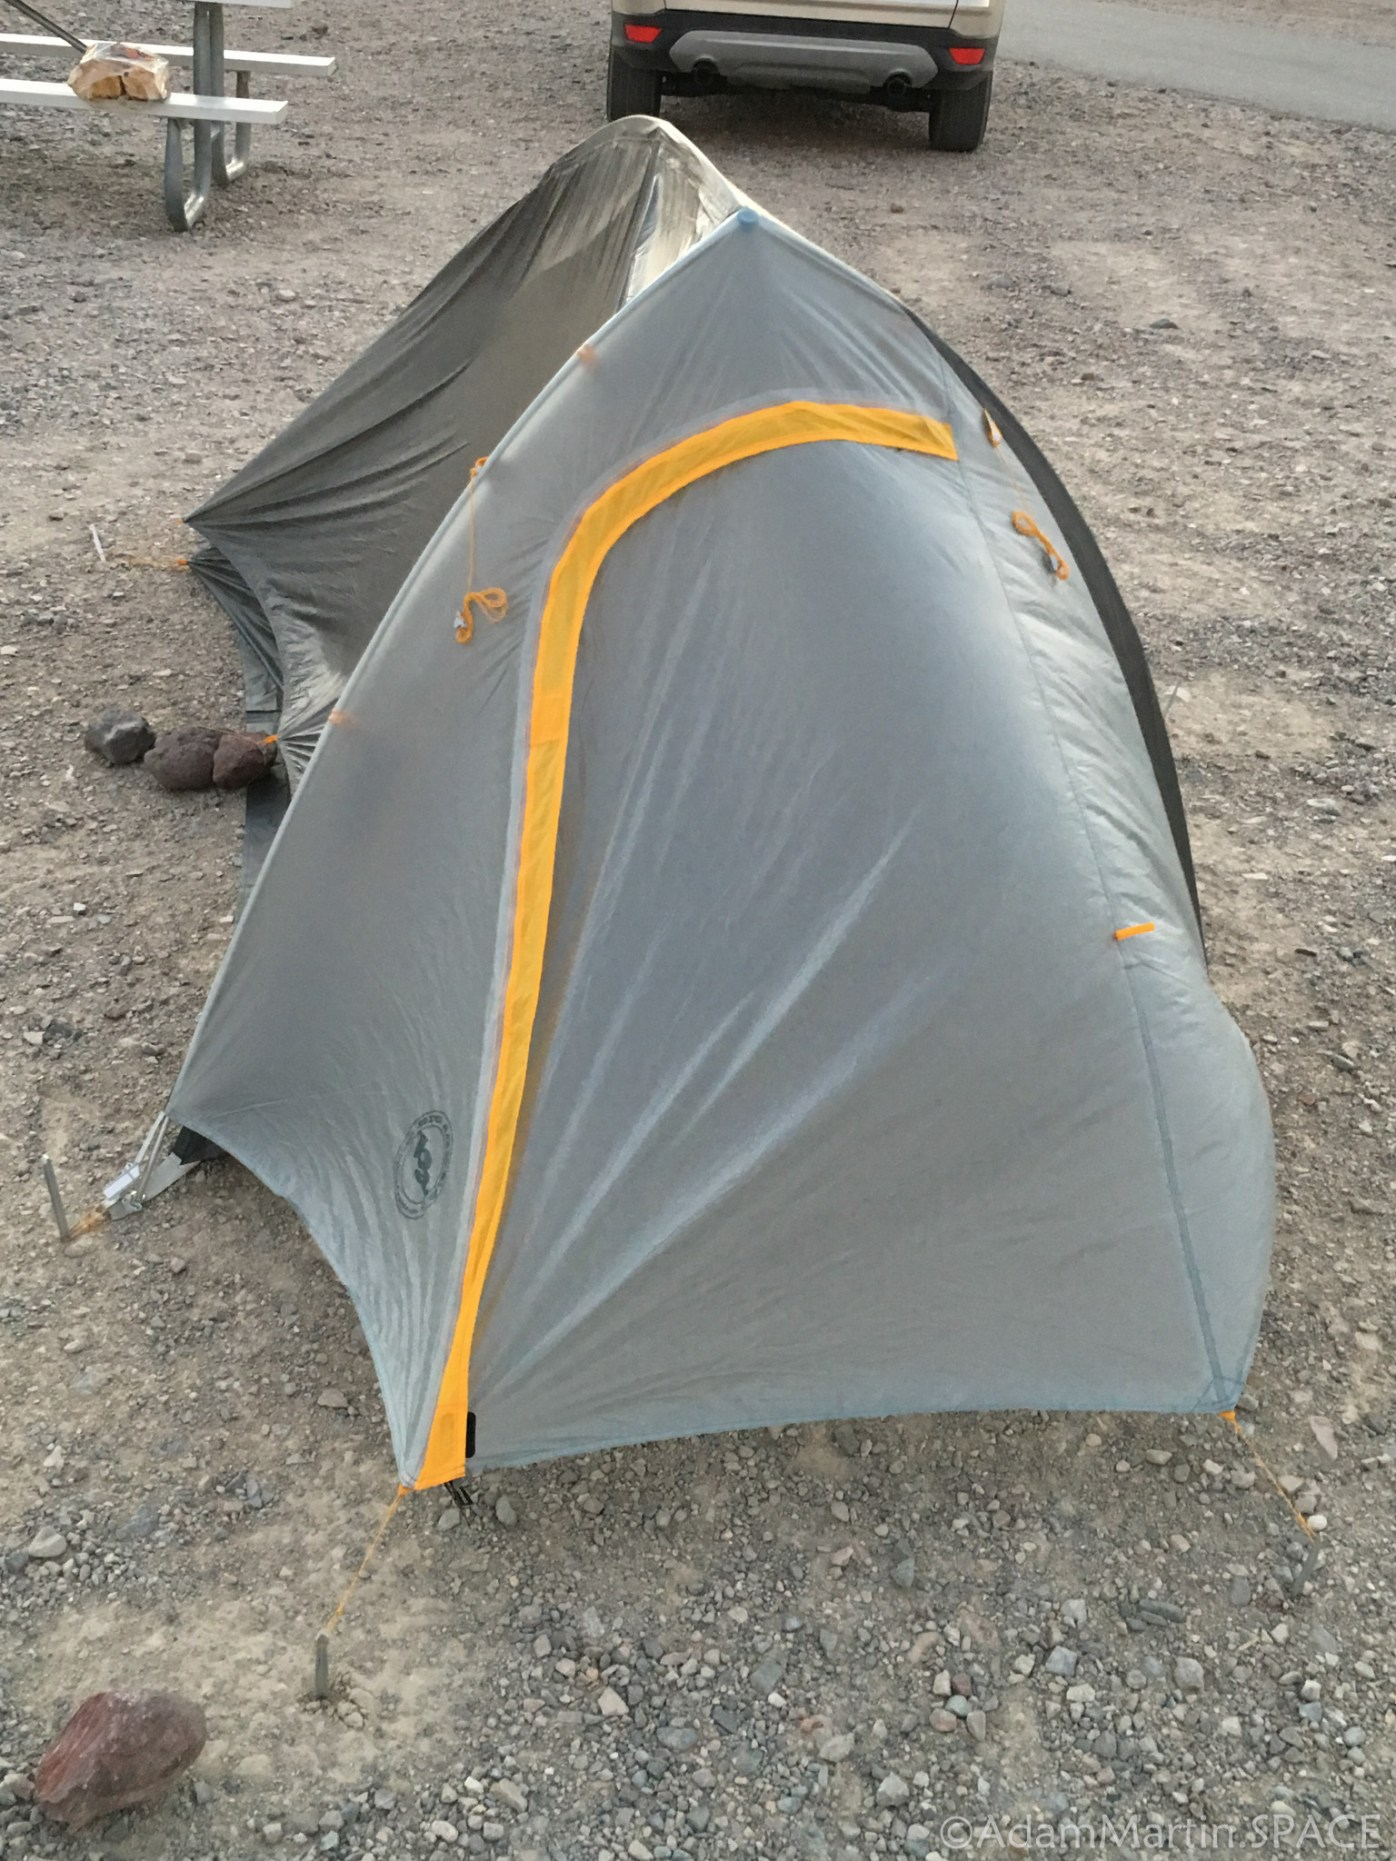 Death Valley - Big Agnes tent didn't do well in the wind